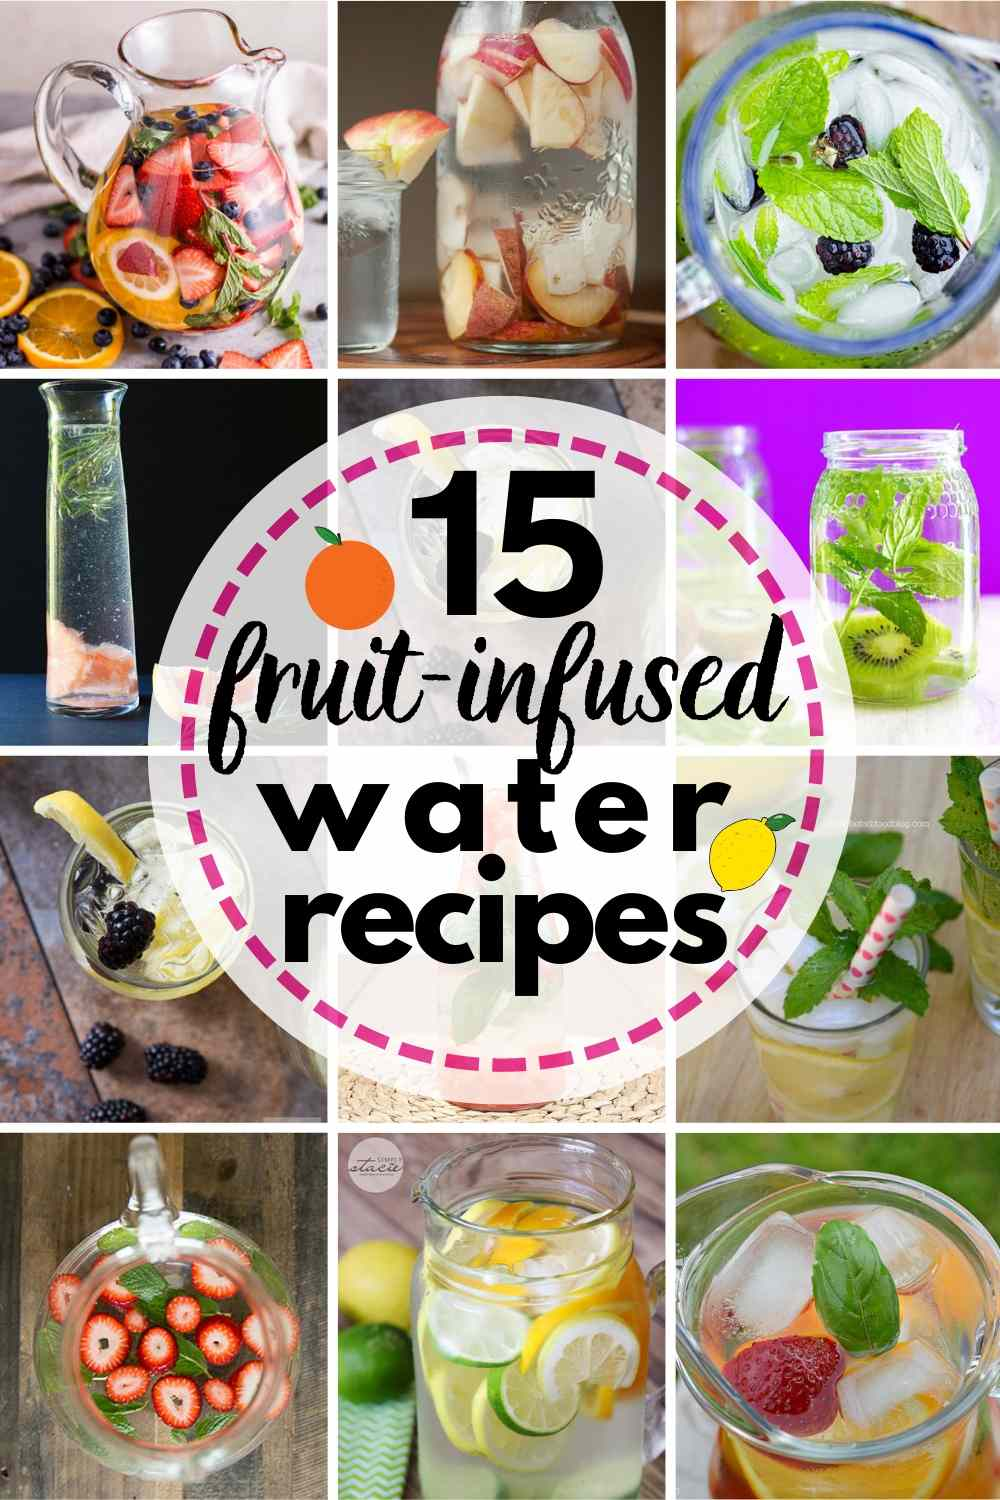 15 Refreshing Fruit-Infused Water Recipes!